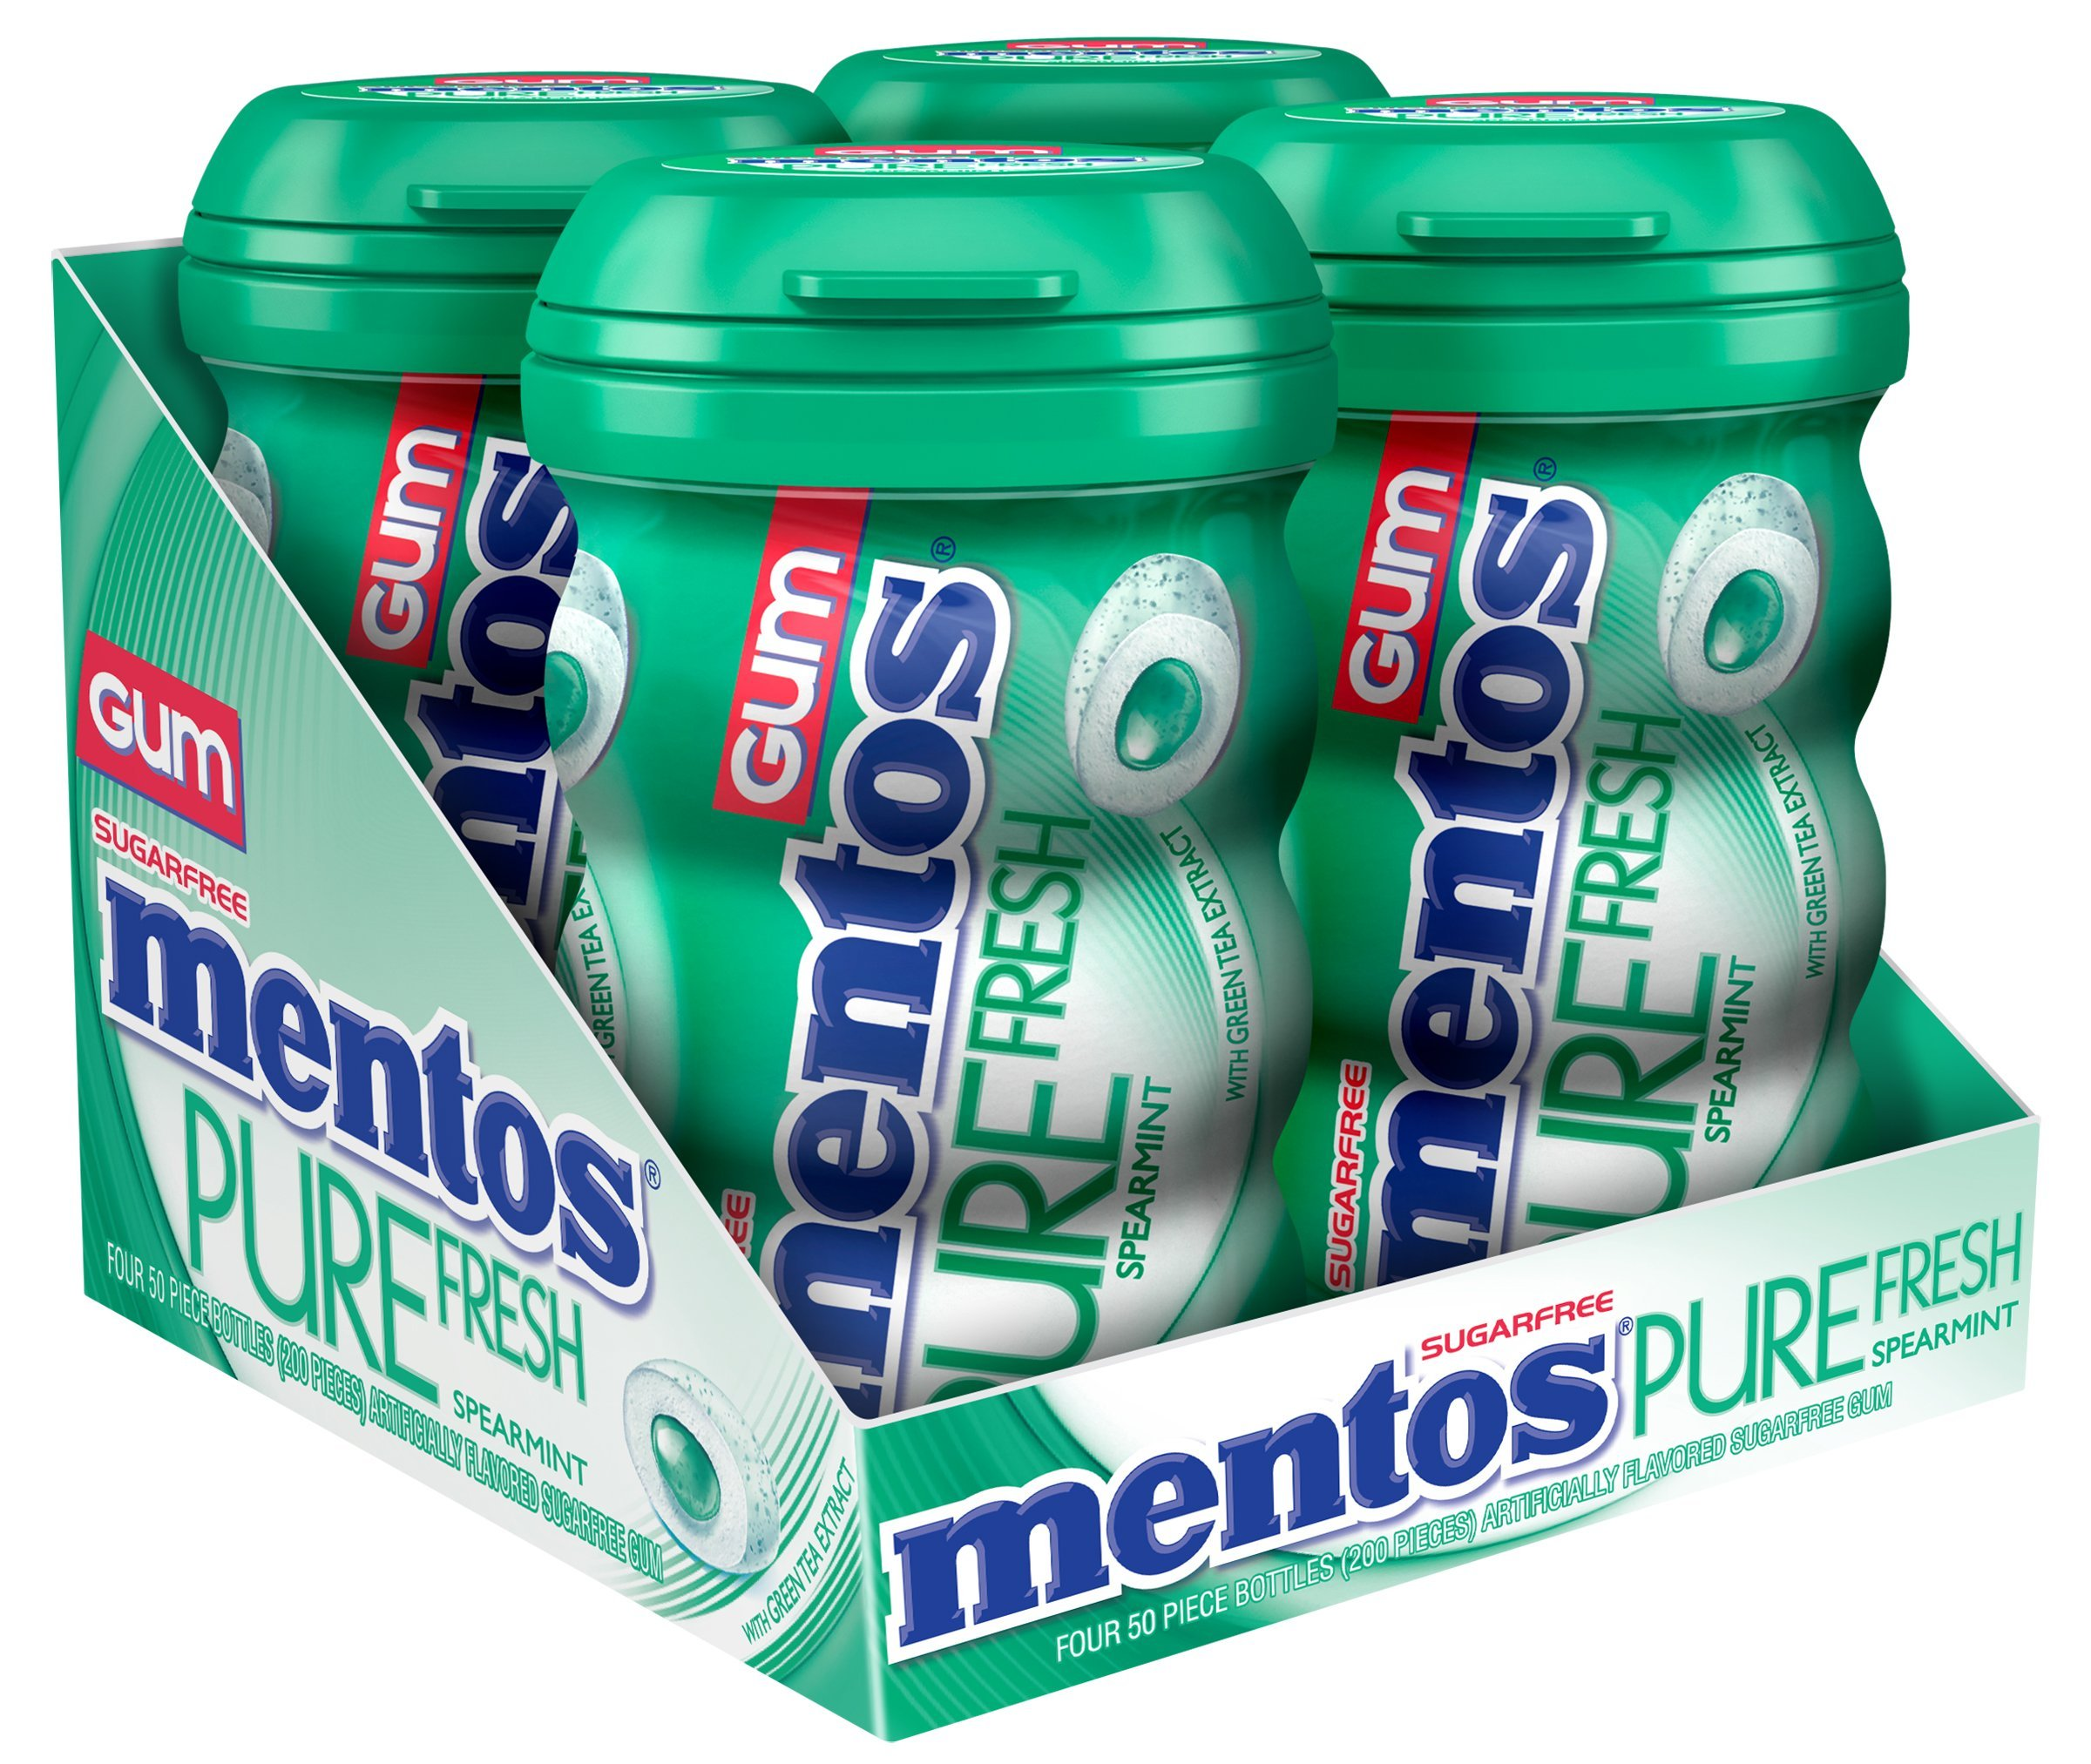 Mentos Pure Fresh Sugar-Free Chewing Gum with Xylitol, Spearmint, Easter Basket Candy, 50 Piece Bottle (Pack of 4)